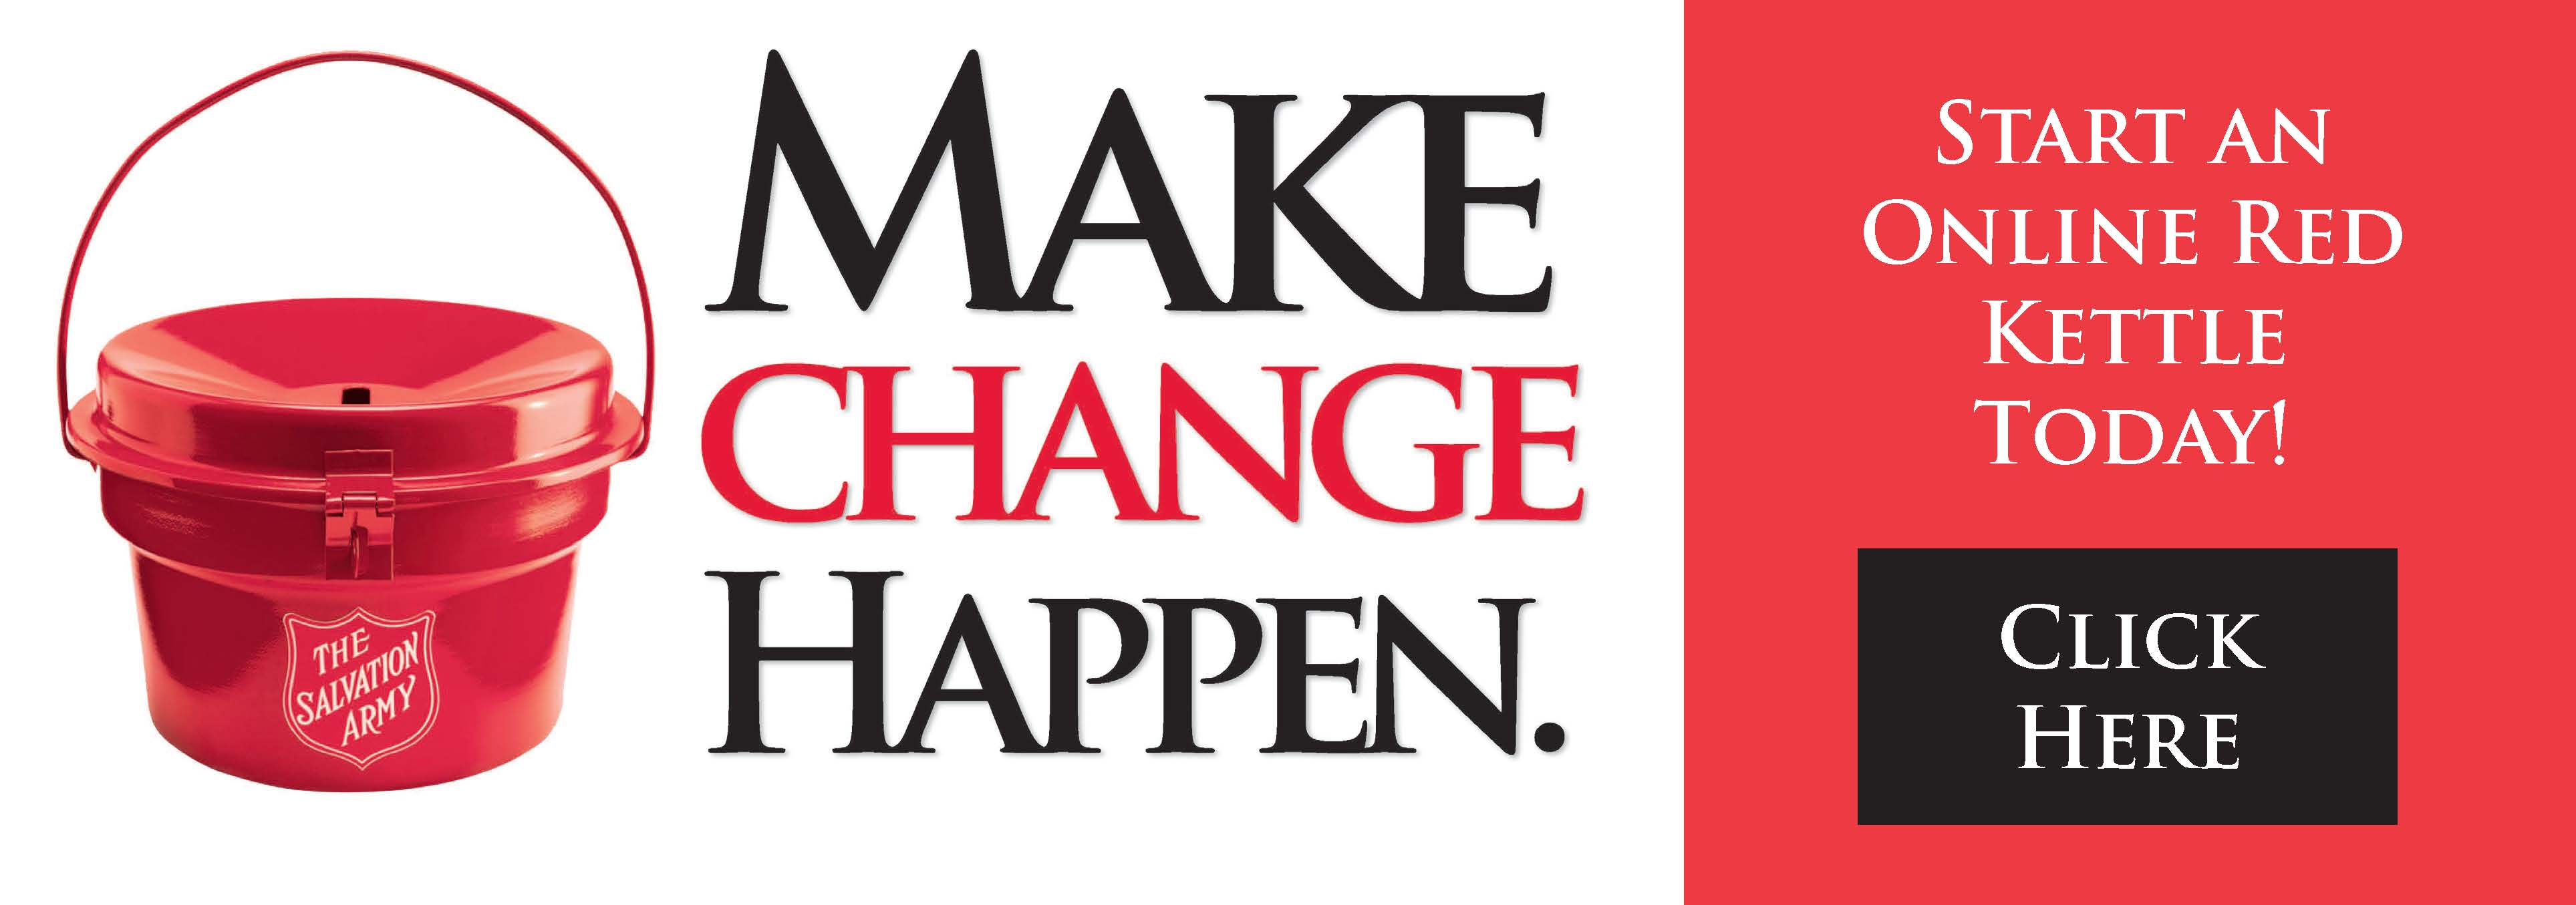 Make Change Happen